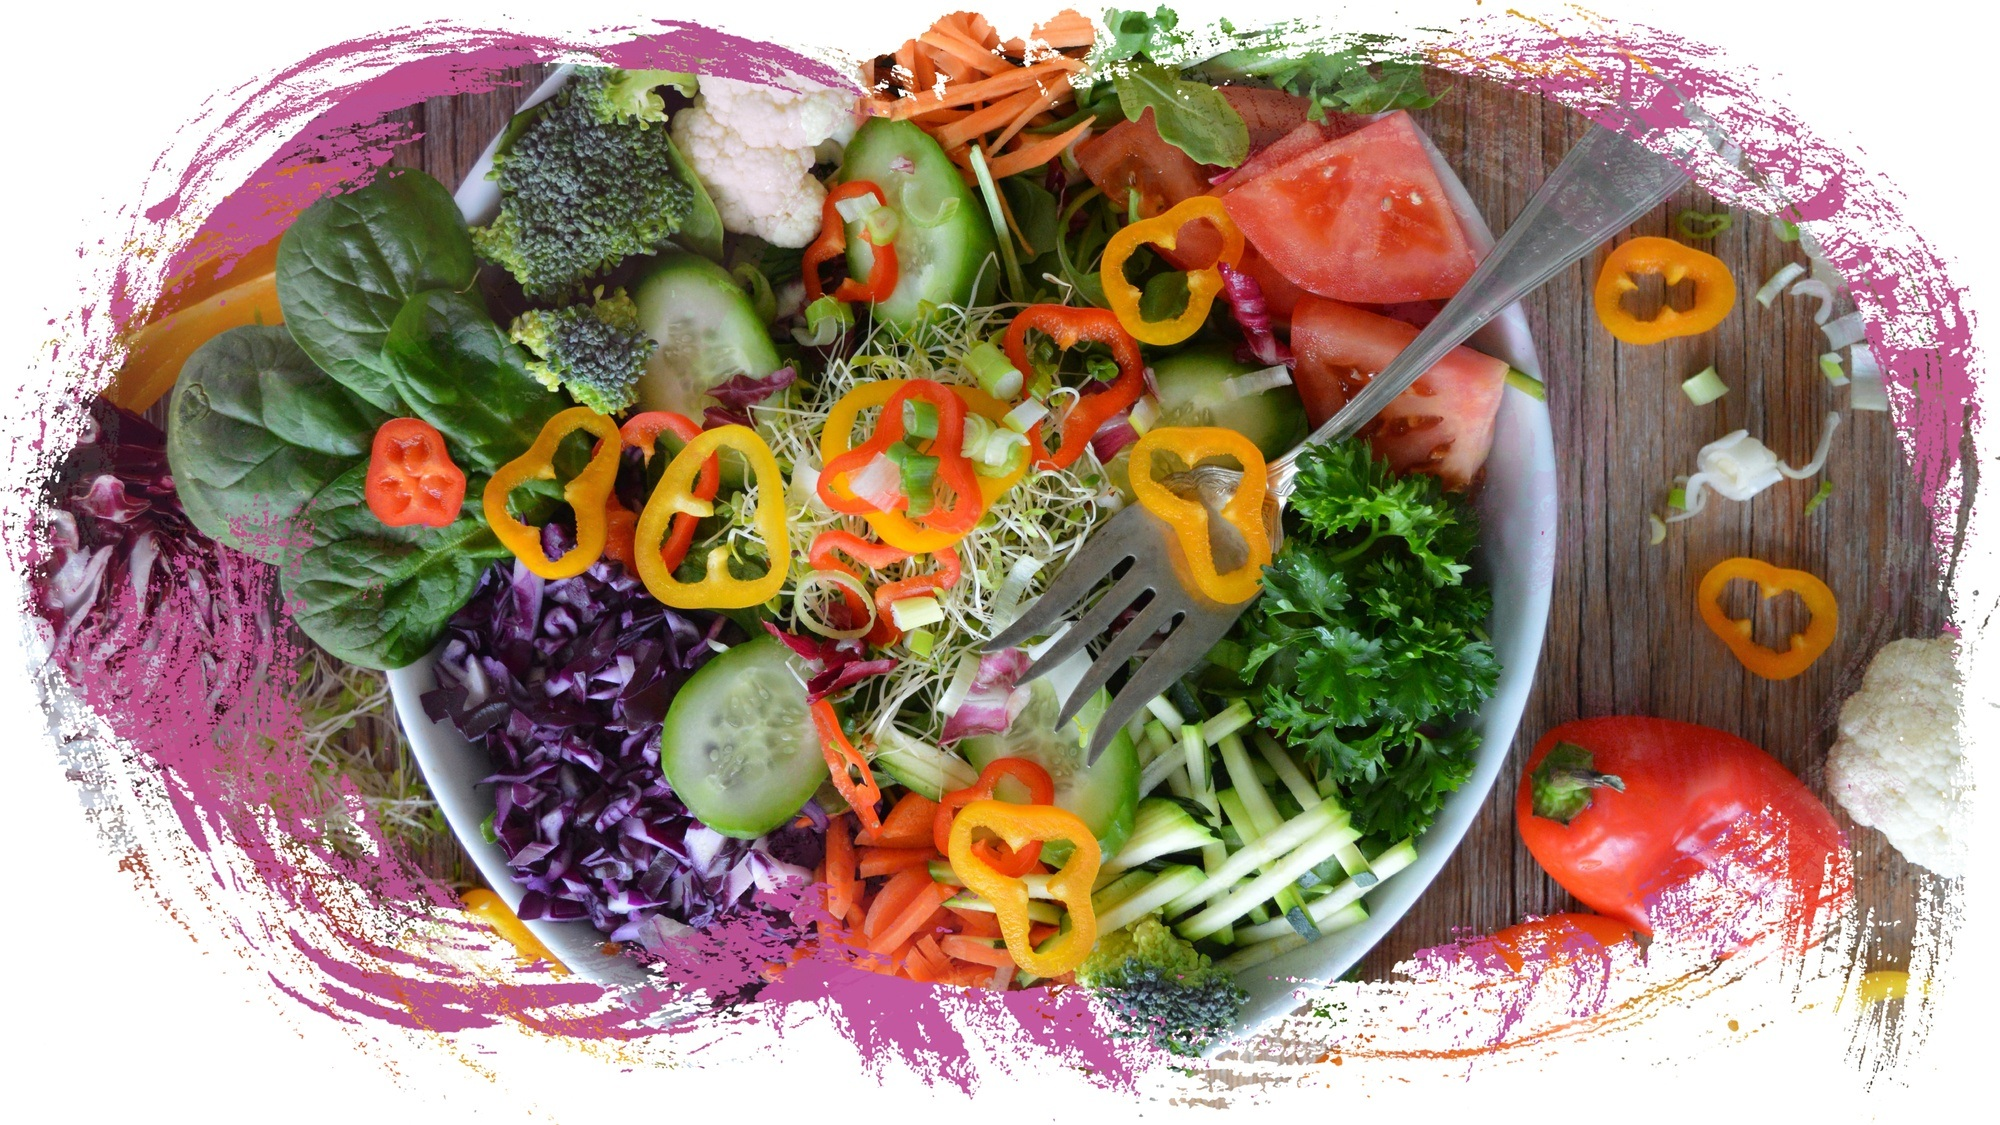 Healthy Eating Made Easy: Optimize Your Environment